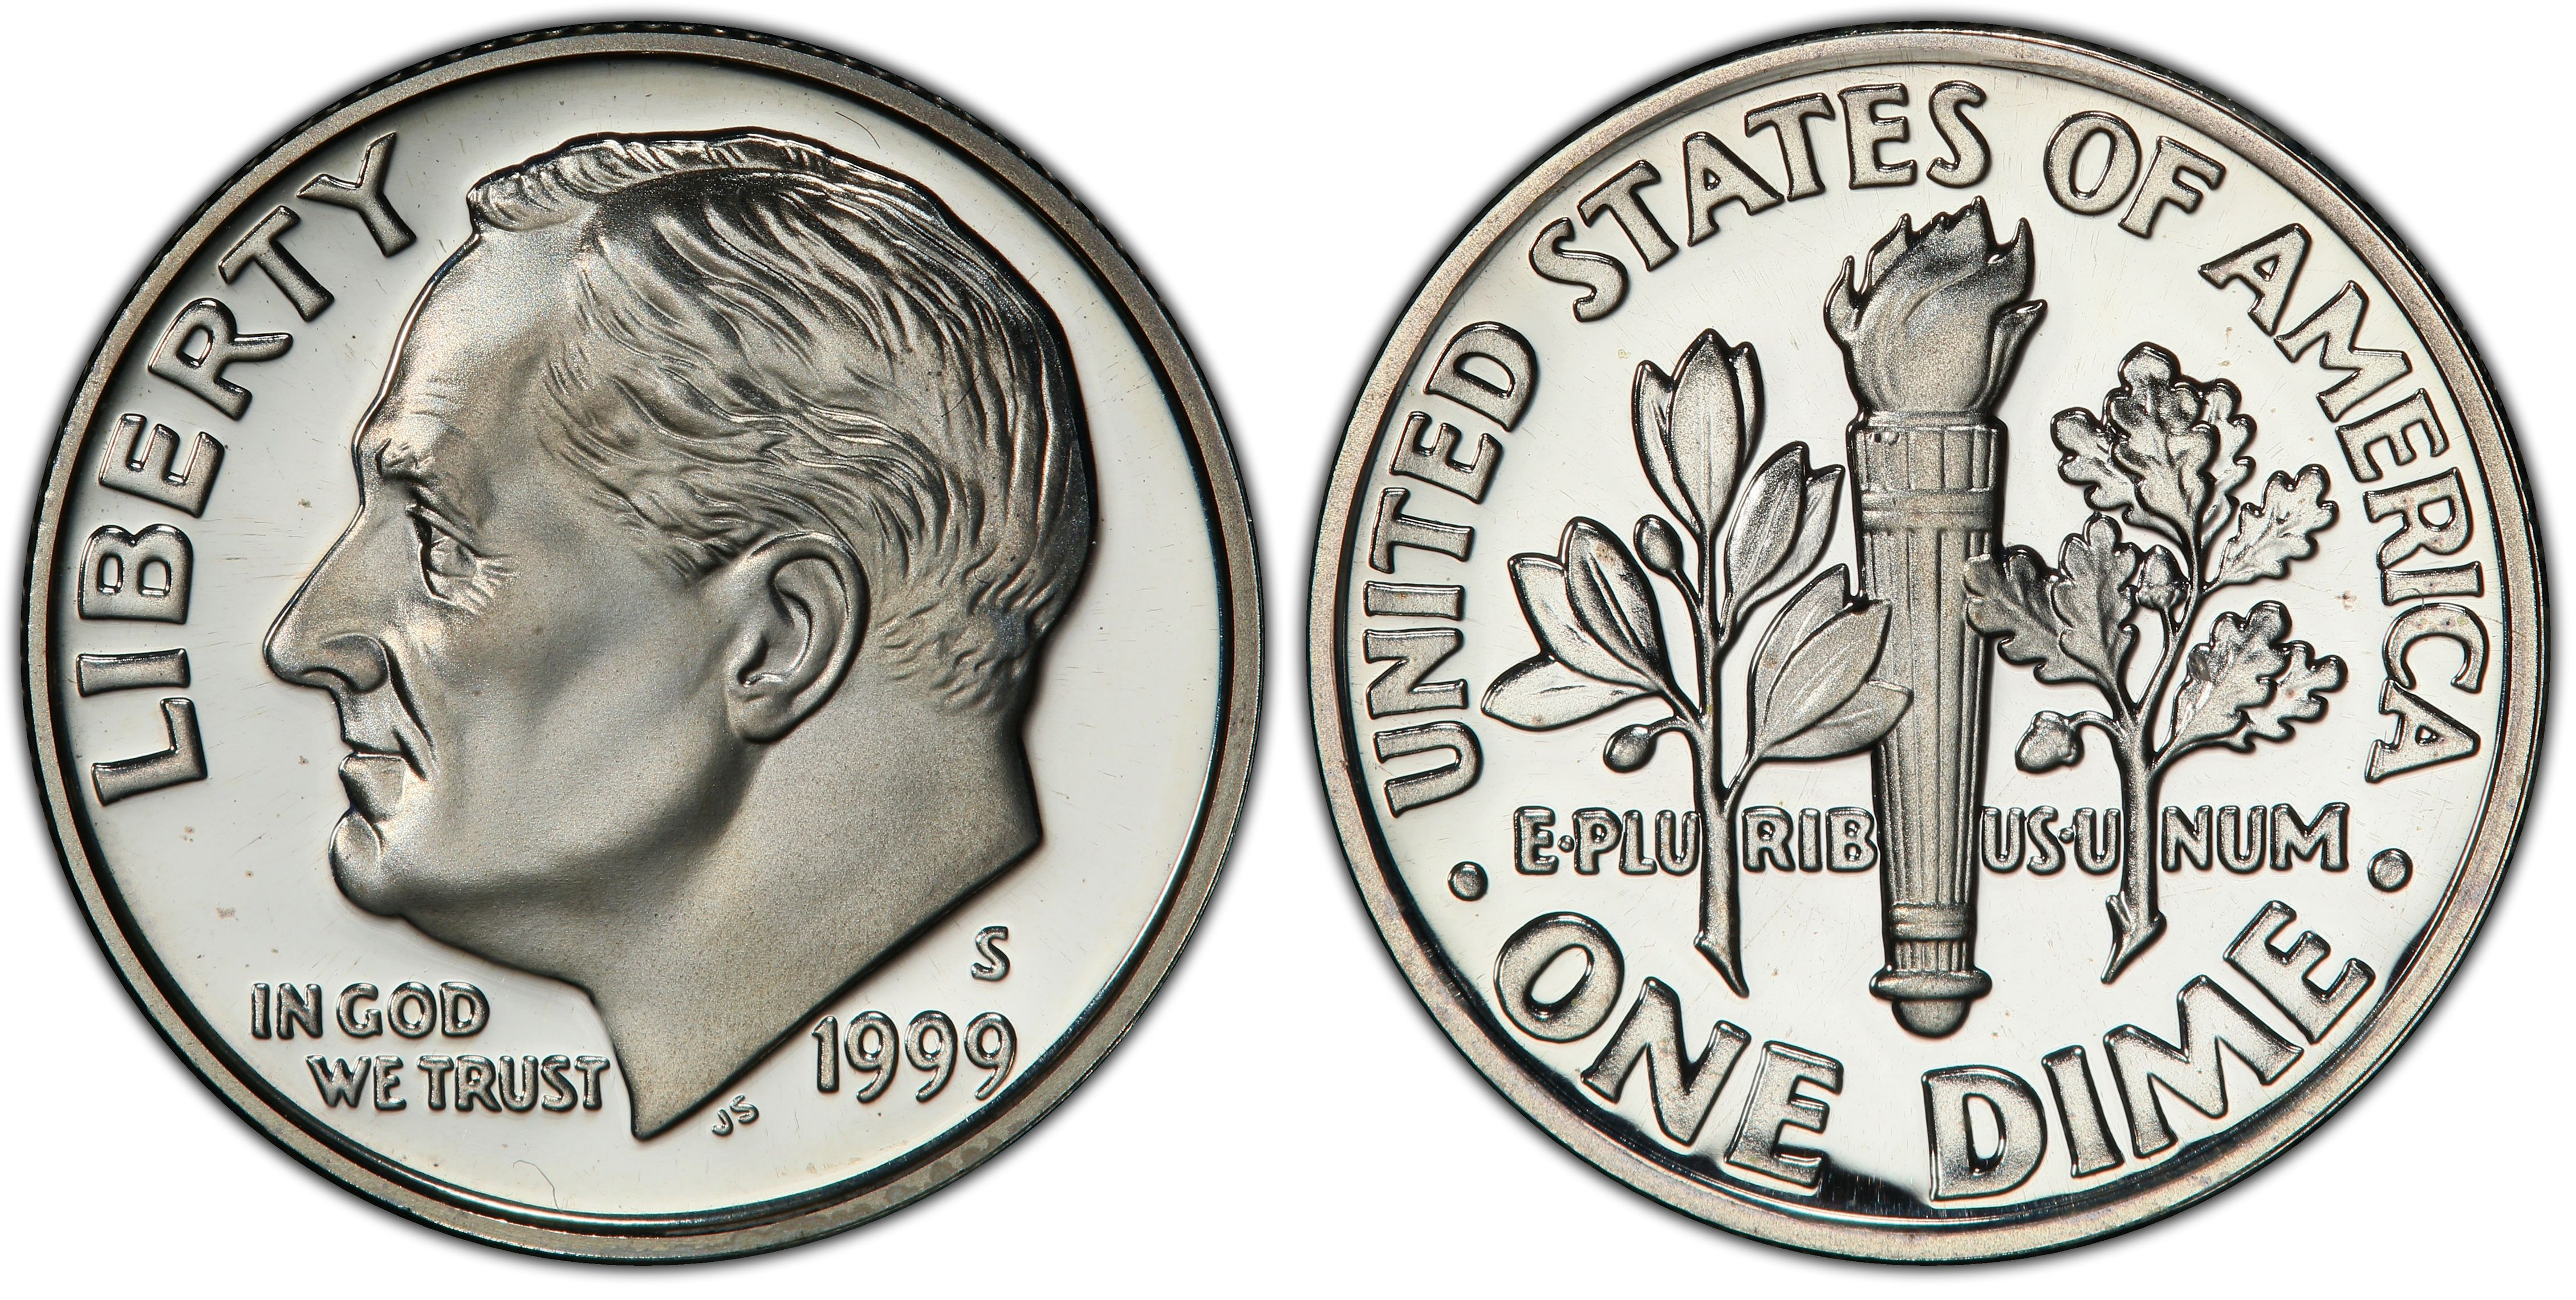 Excellent 1990-S Proof United States Roosevelt Dime 10c Coin